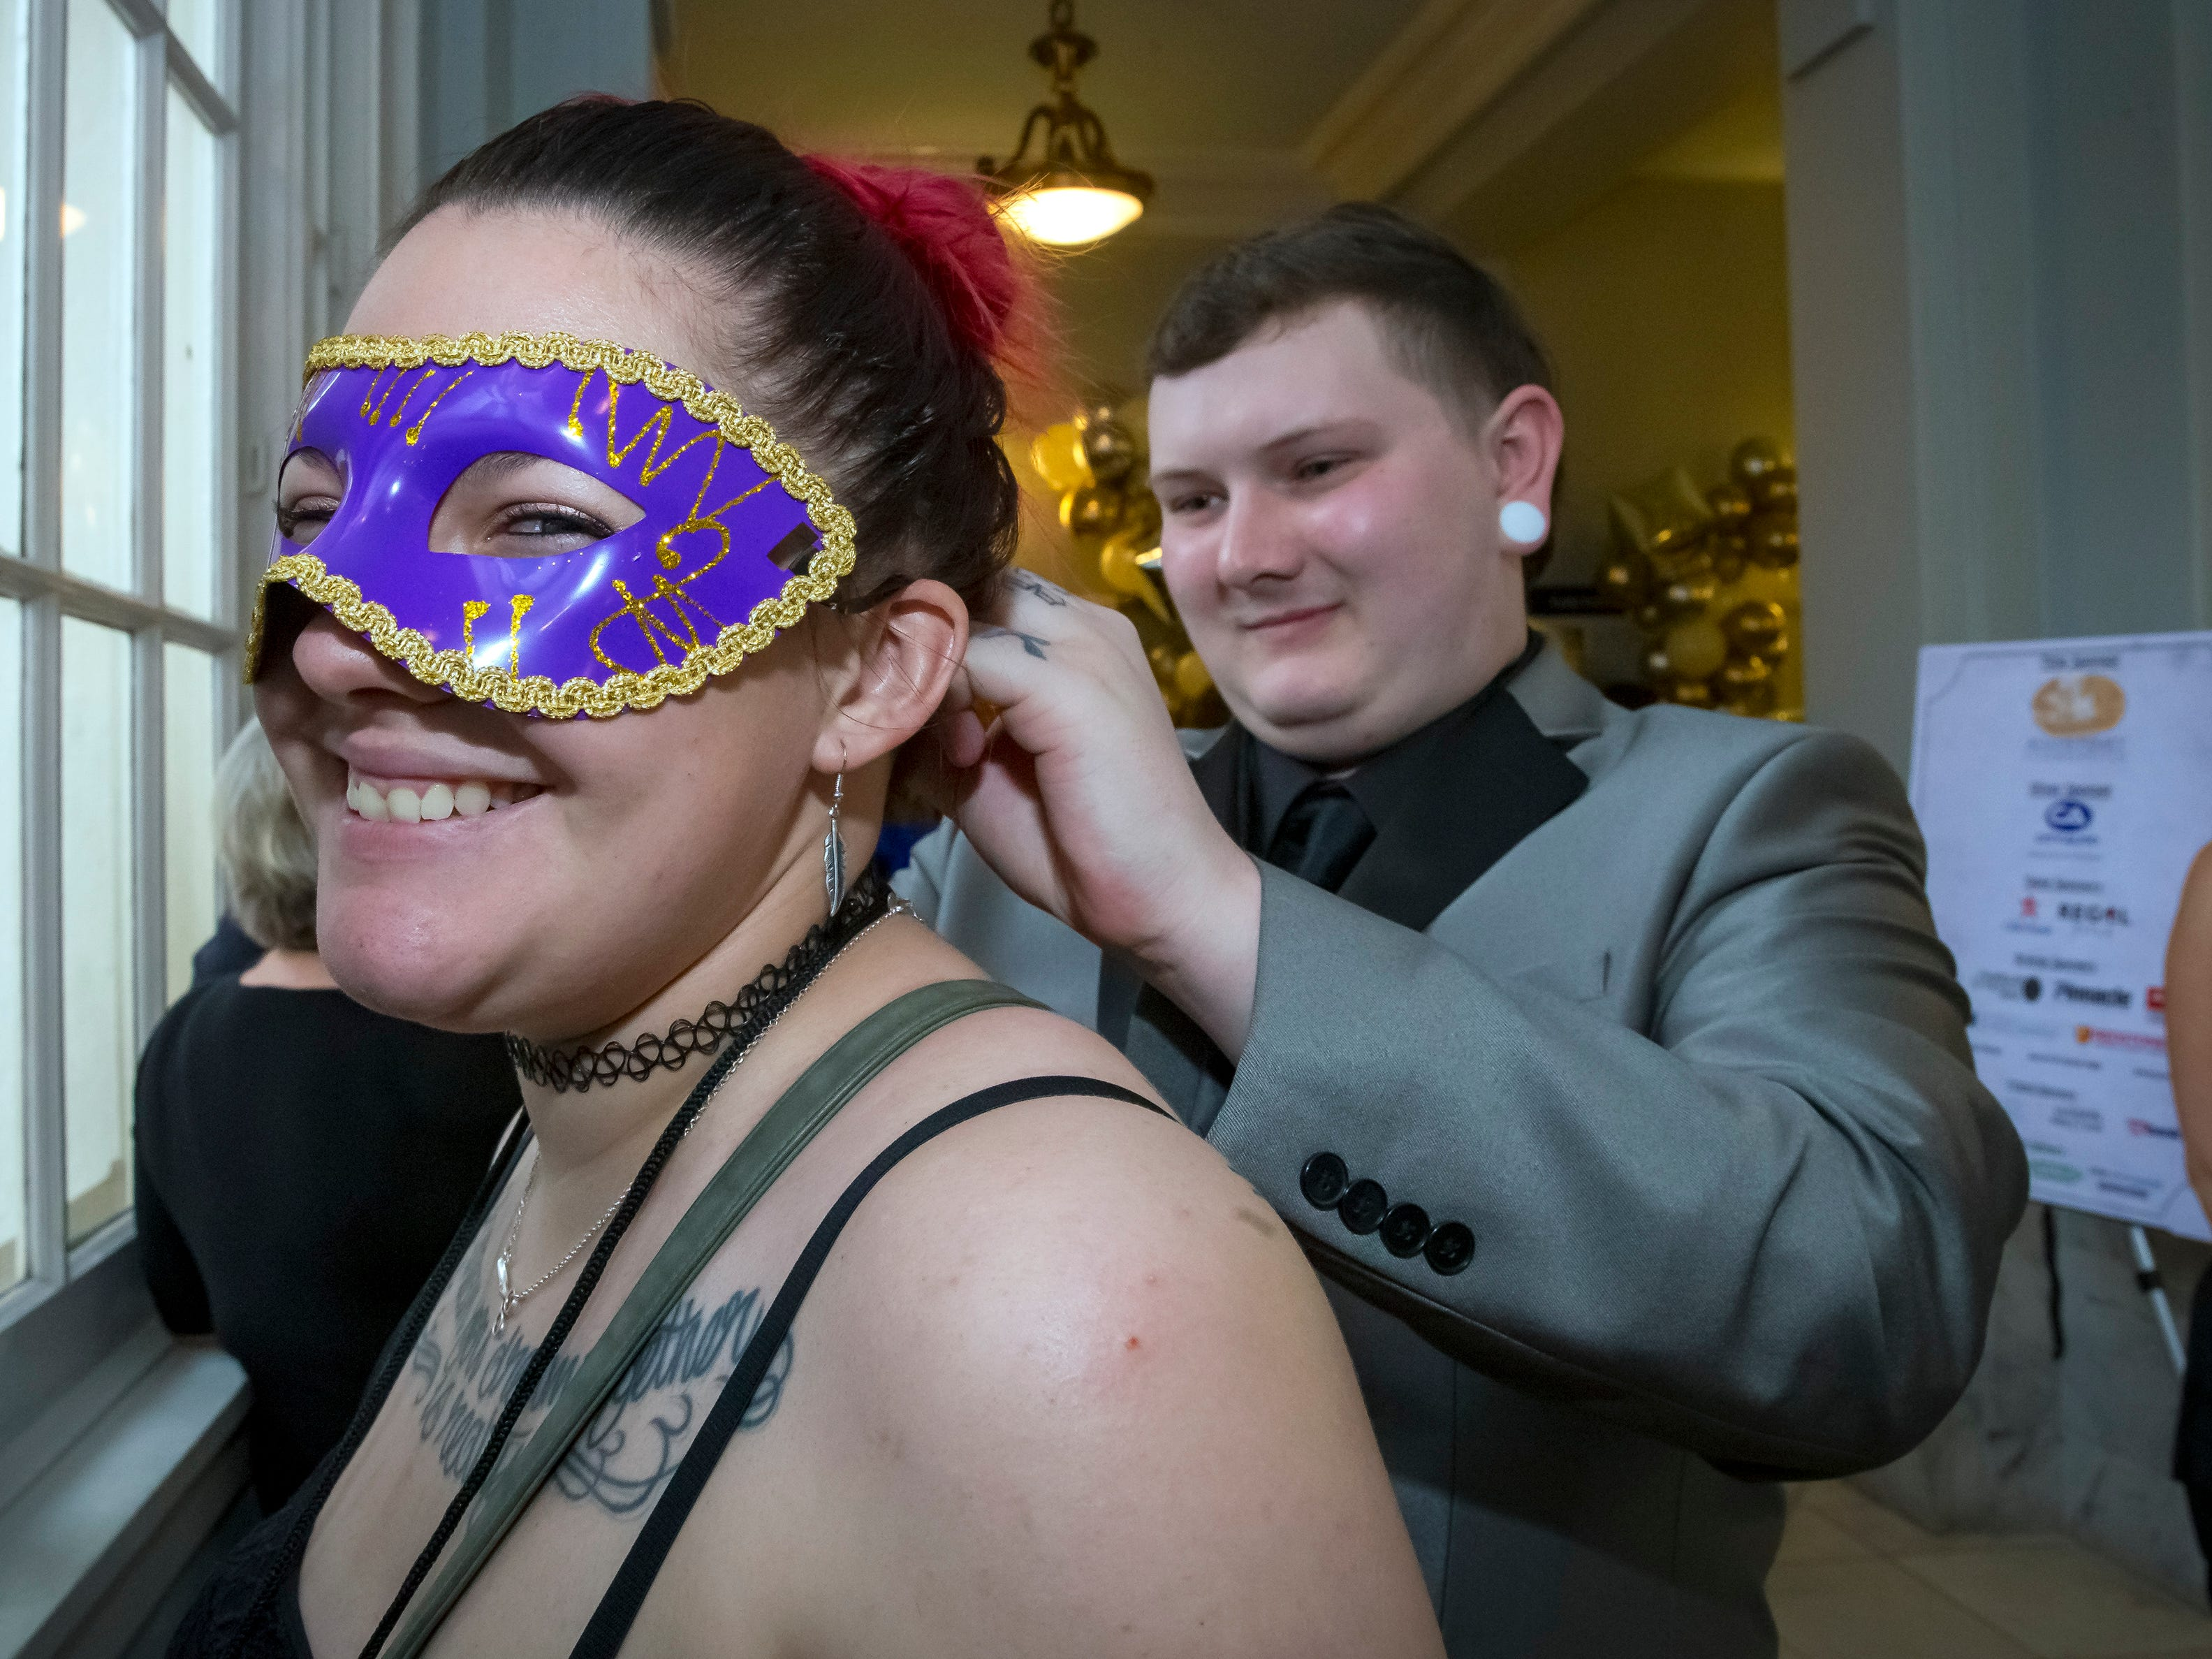 Center for the Arts held its annual Masquerade Bash on Saturday, April 13, 2019.